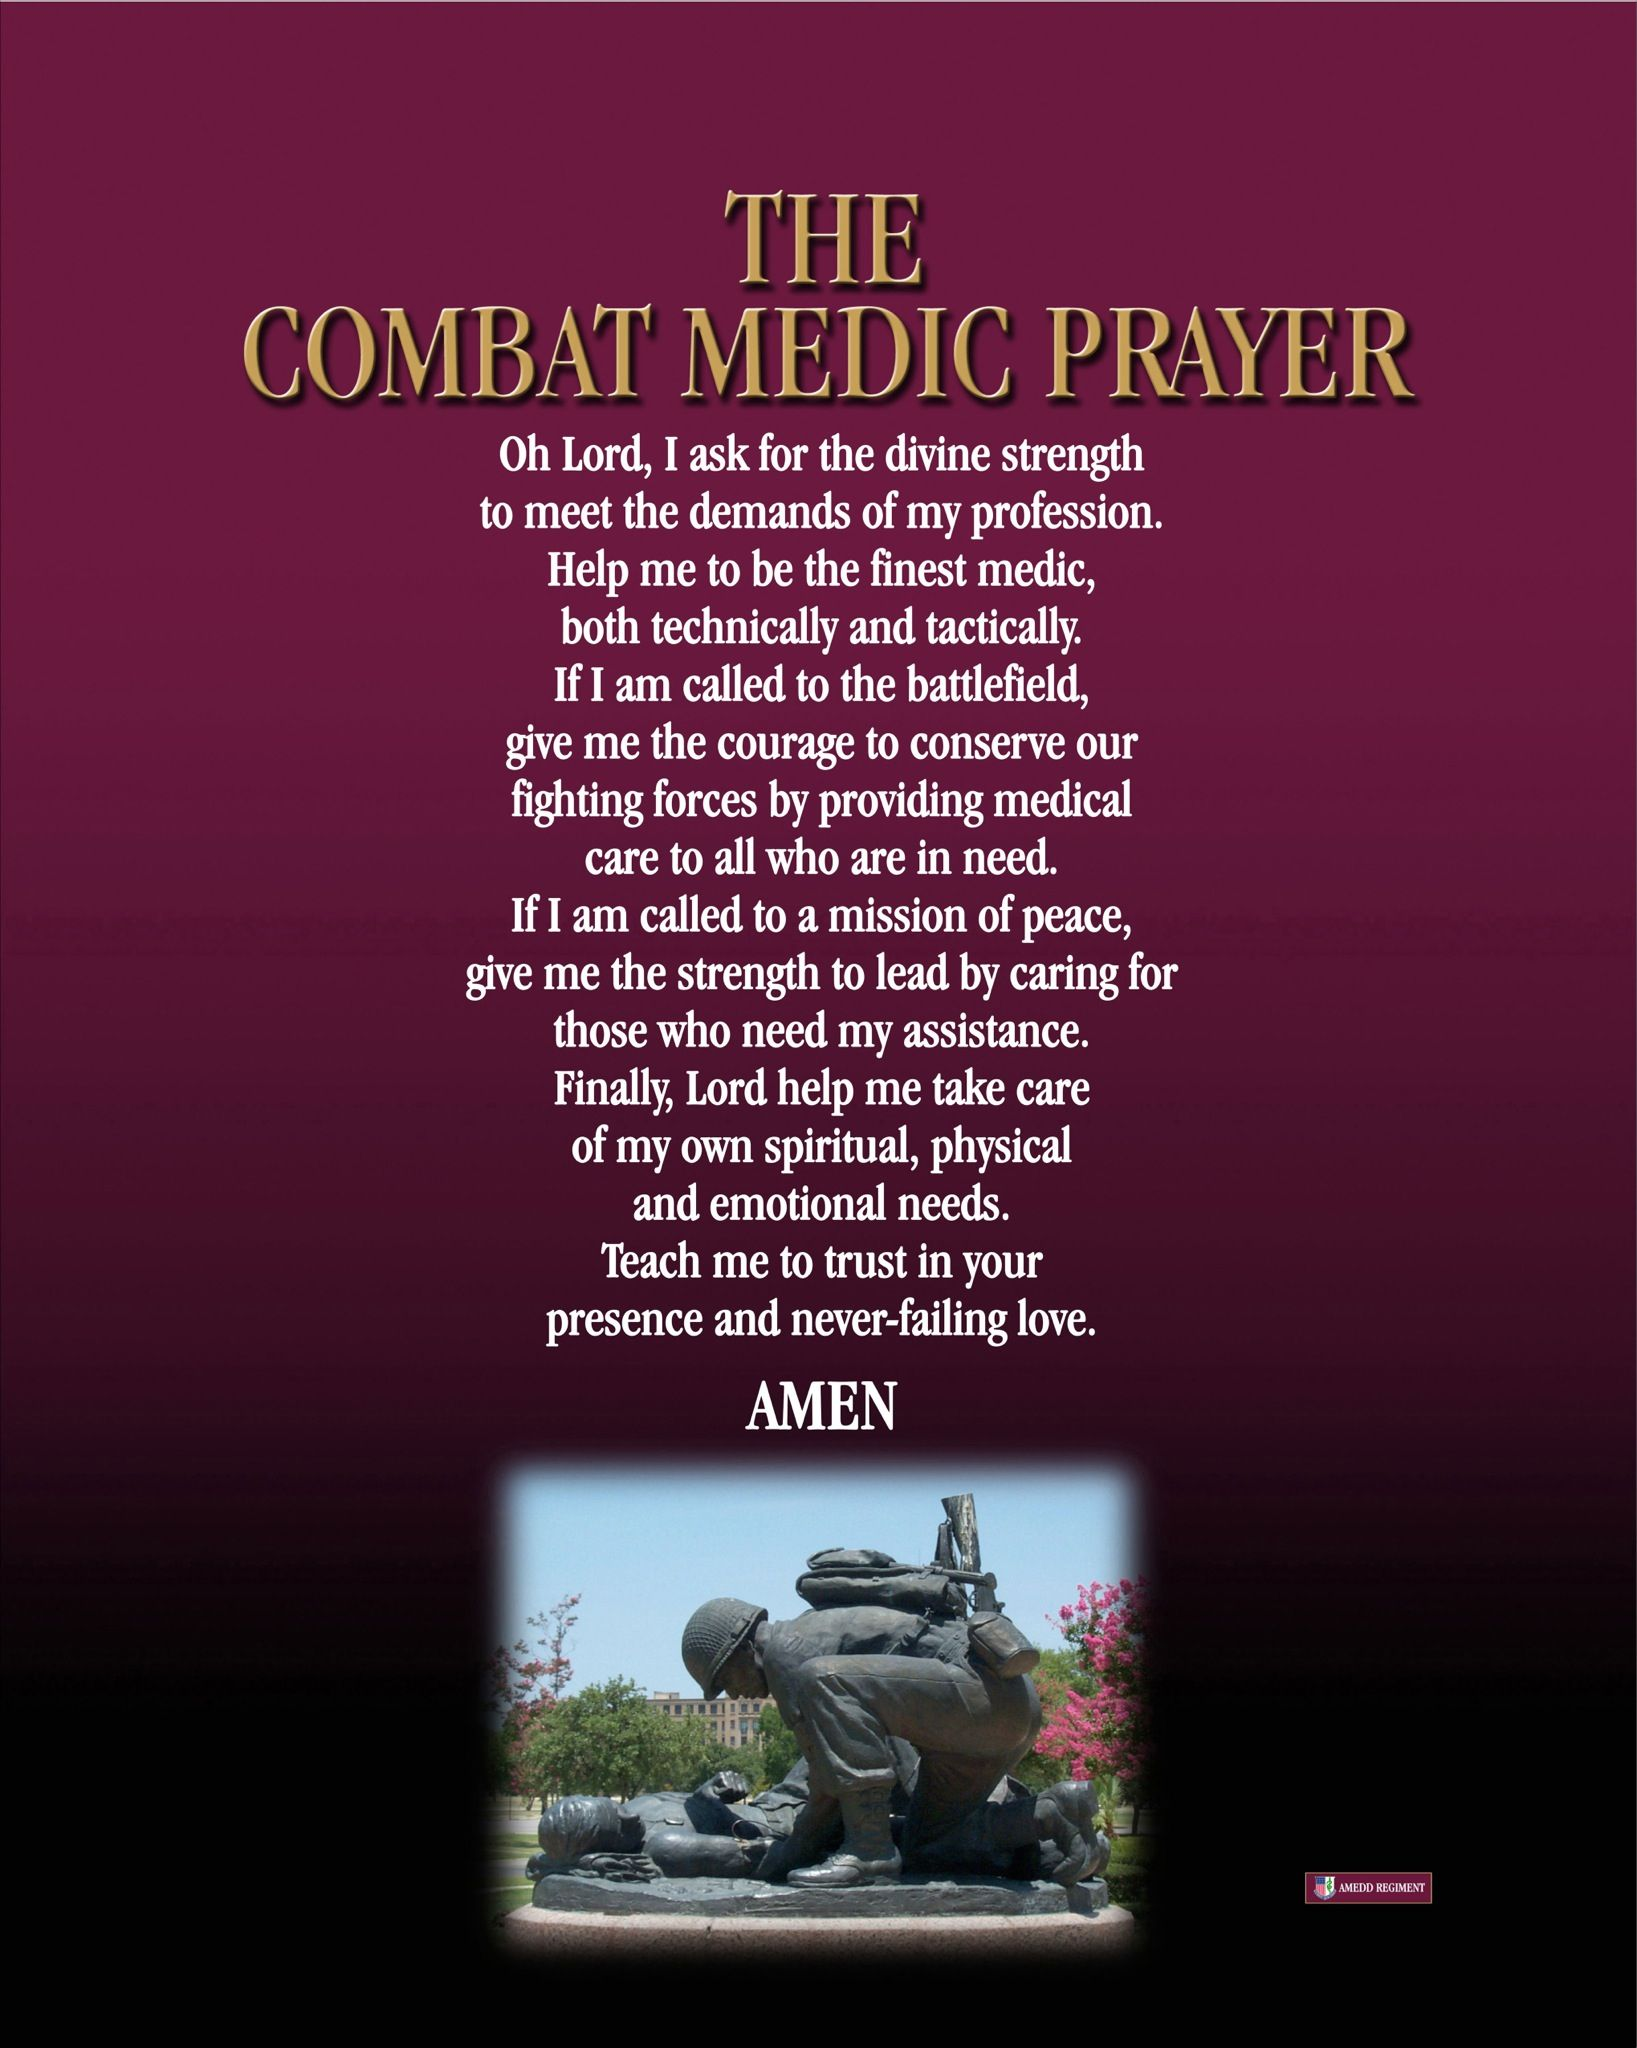 Medics prayer